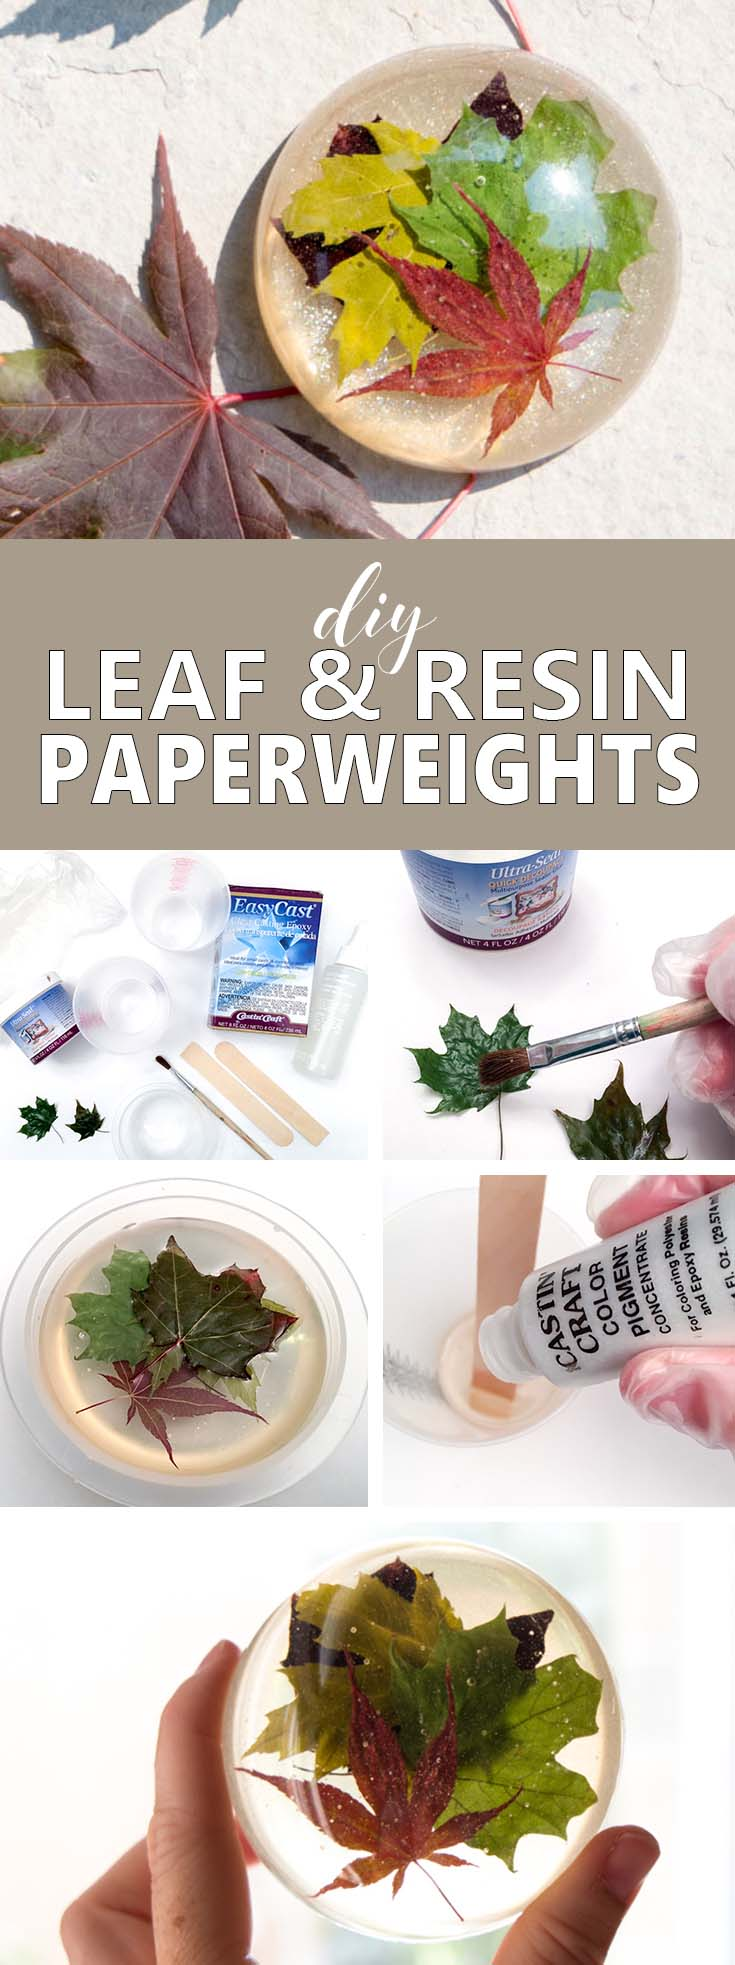 Learn how to make a resin paperweight with real leaves. A beautiful, nature-inspired fall craft idea or thoughtful handmade gift for a boss or coworker.